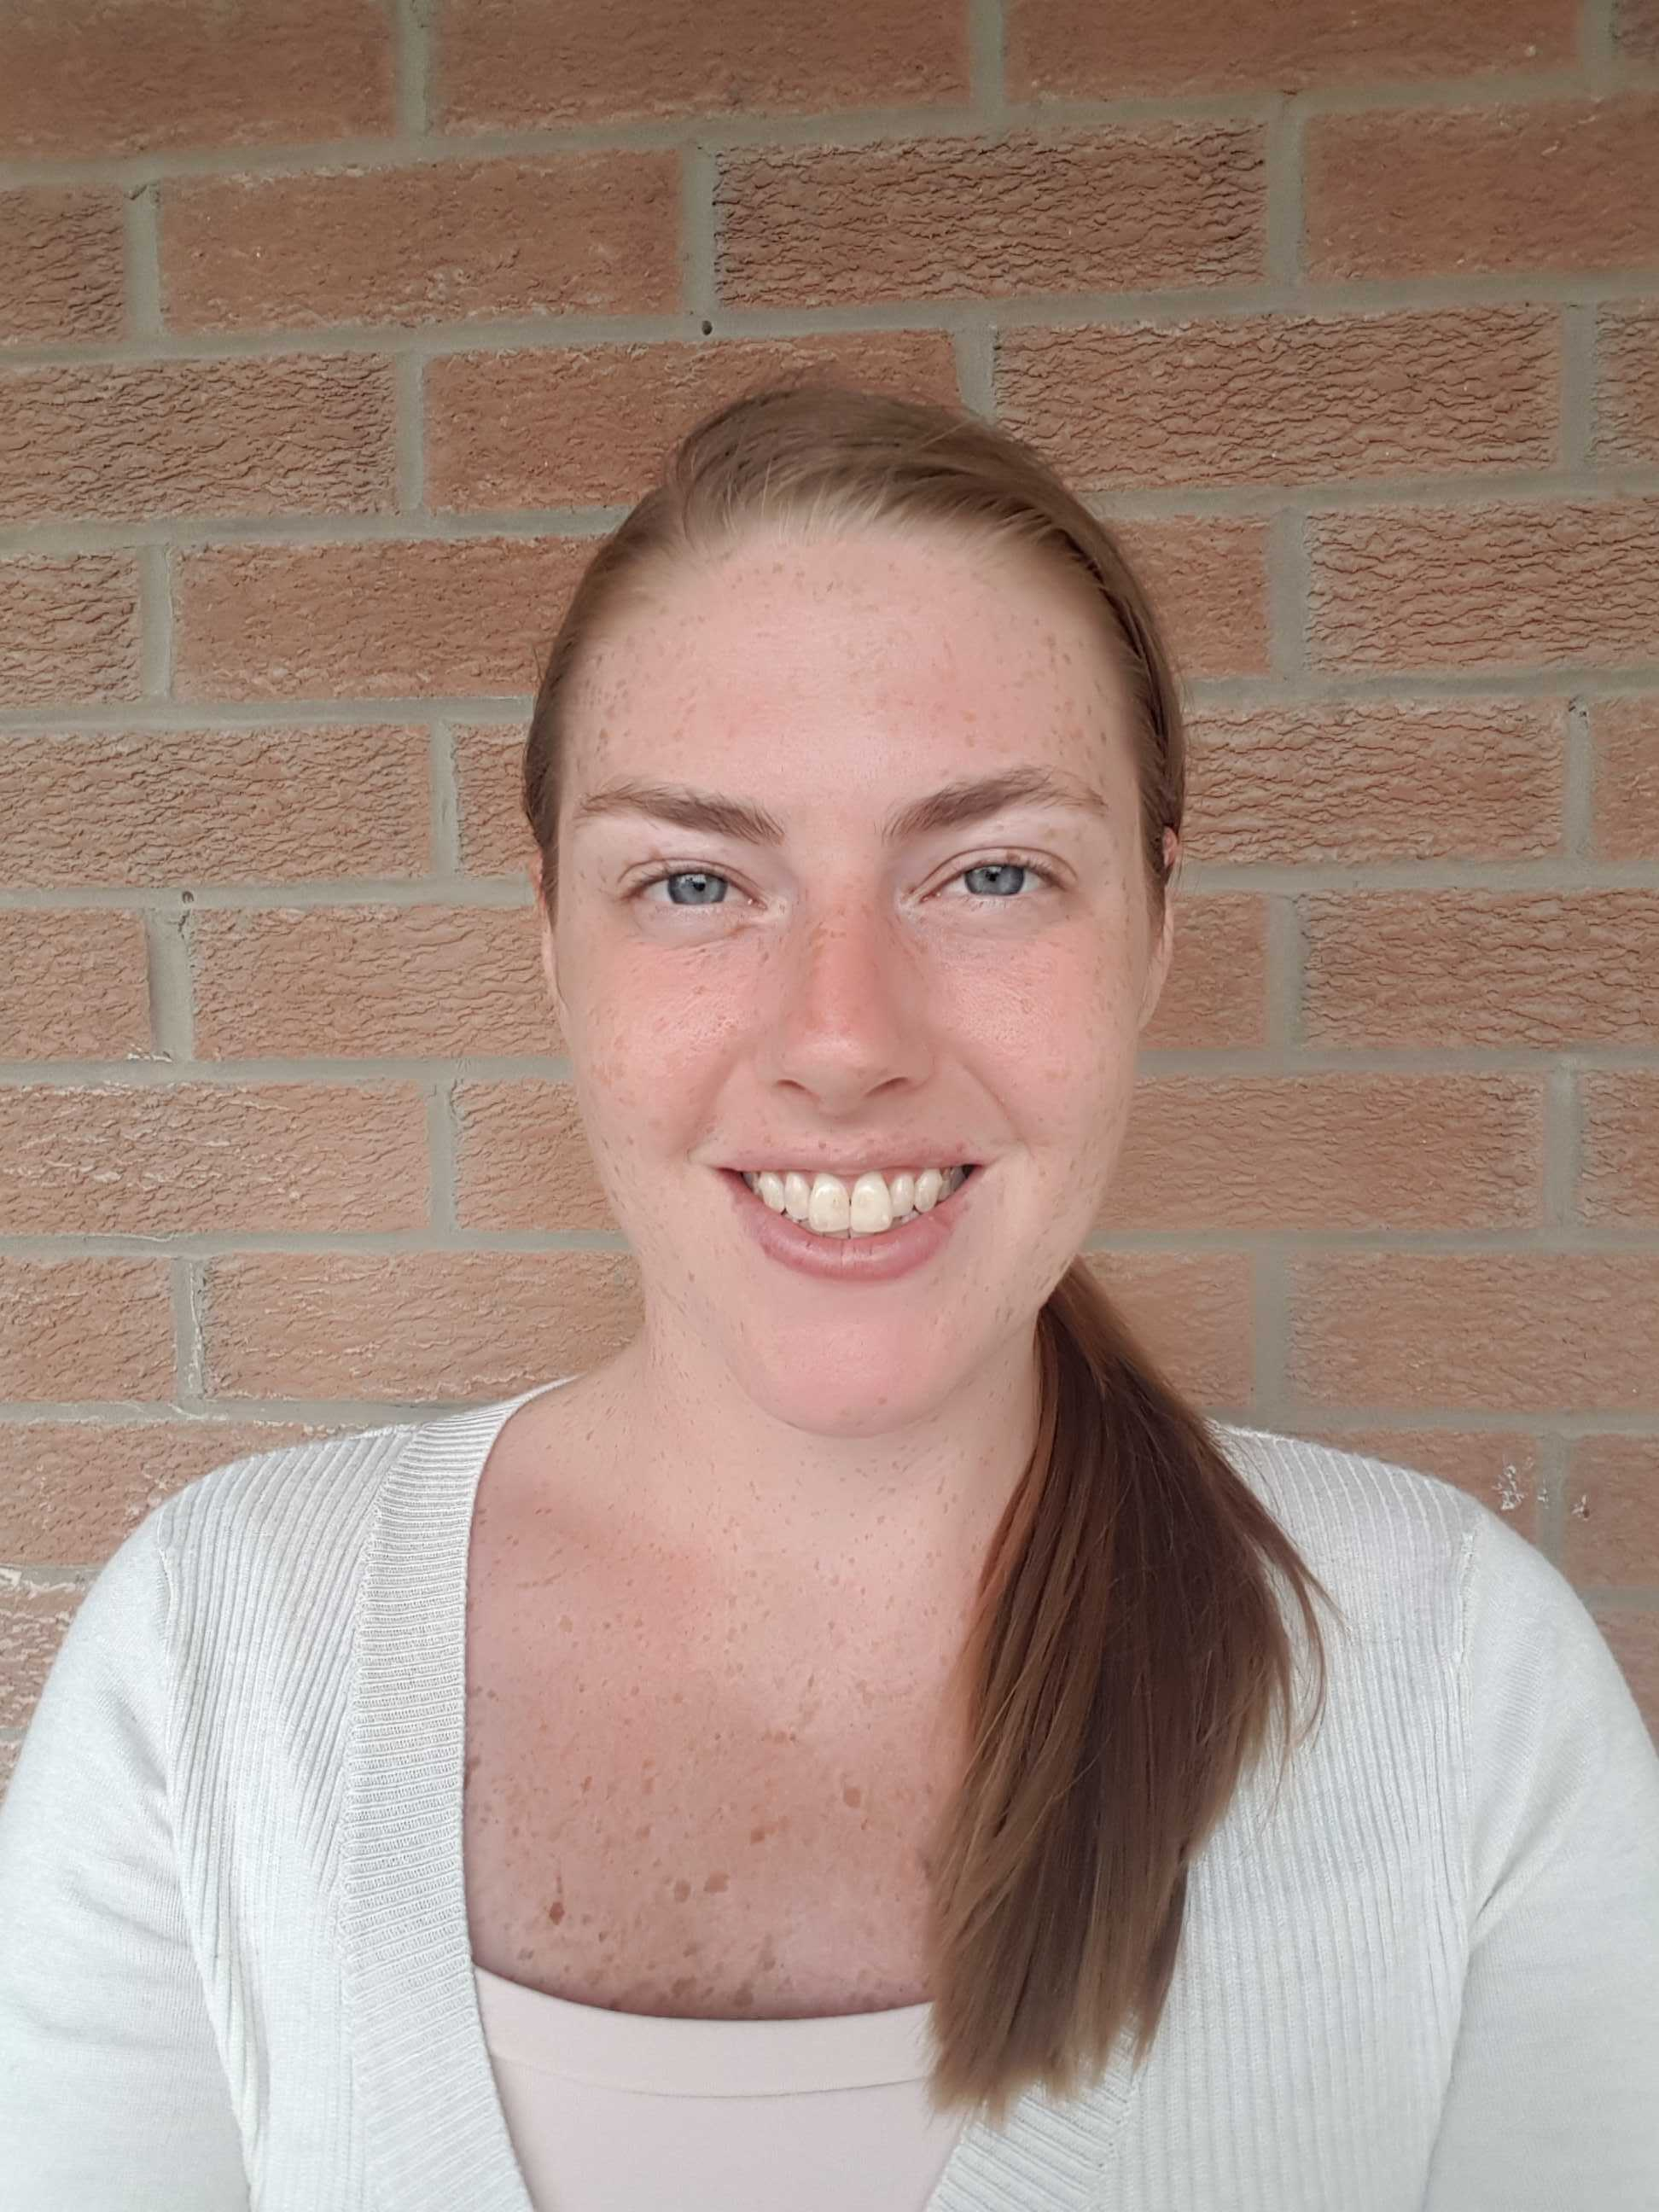 Profile Image of Nicolle White, hair tied in a low ponytail, smiling with the red brick background. Female, red hair, freckles, white shirt.